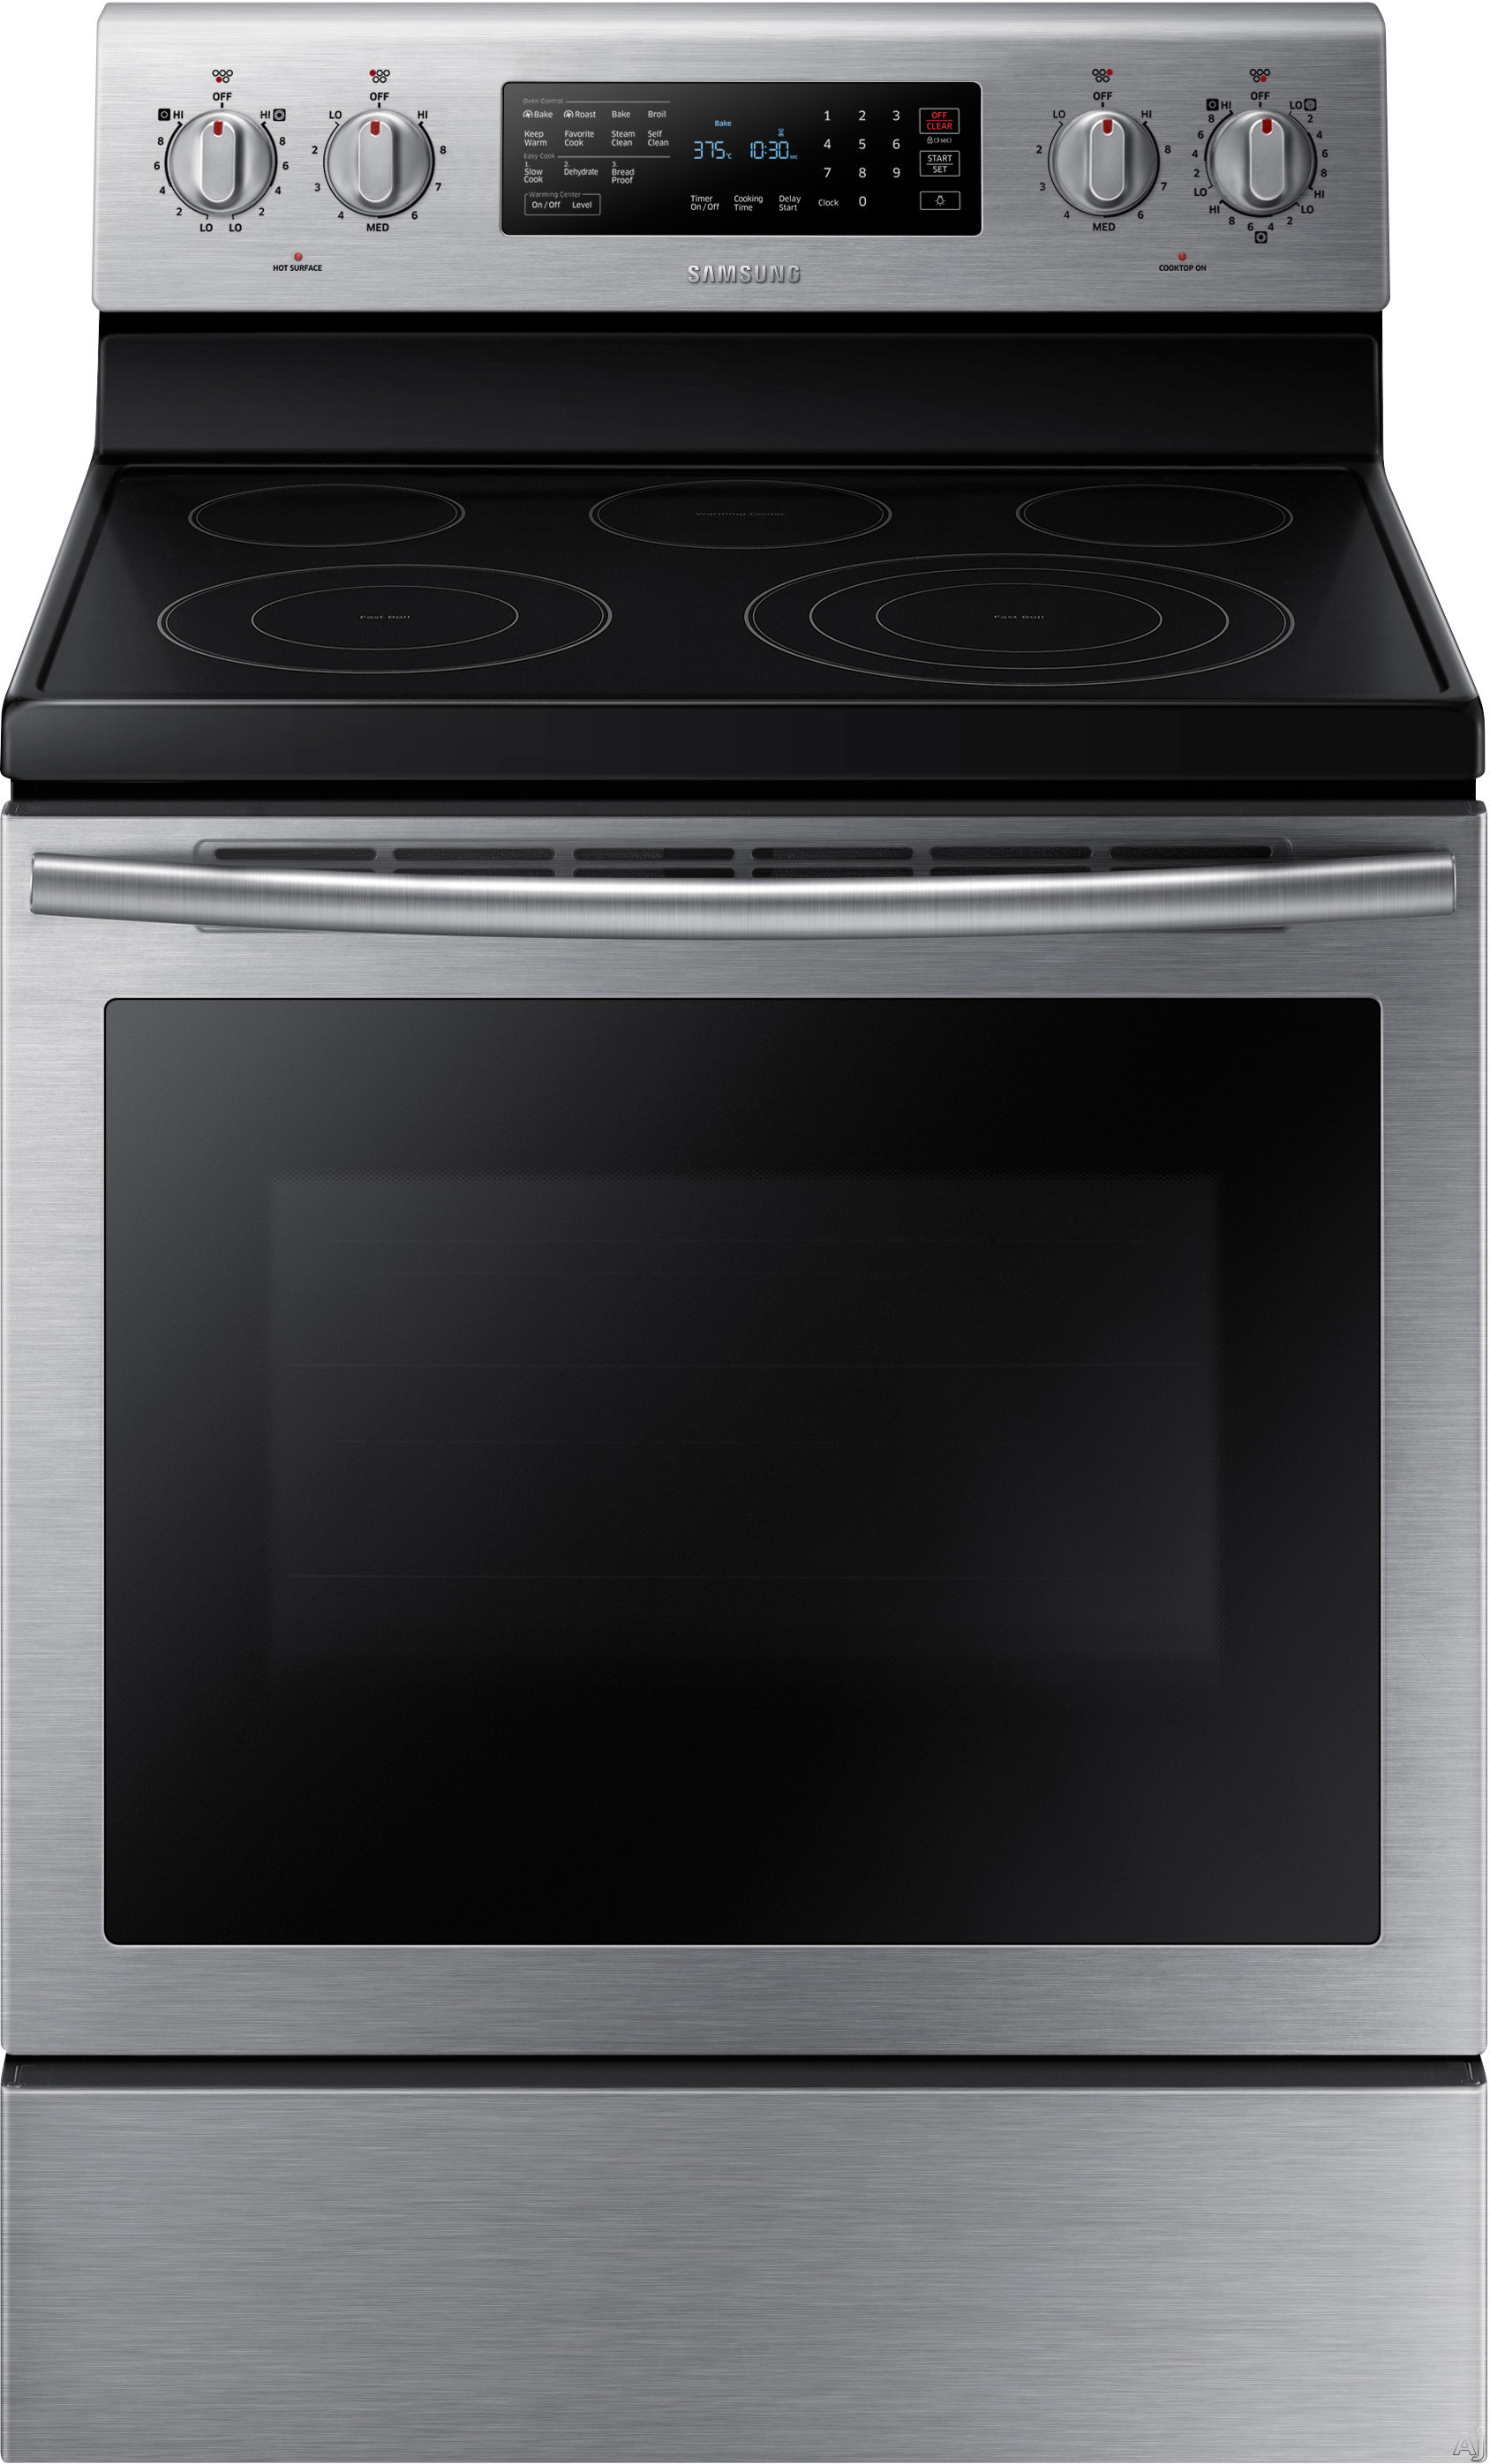 Samsung Ne59j7630ss 30 Inch Freestanding Electric Range With 59 Cu Wiring For 220 Stove Ft True Convection Oven 5 Smoothtop Elements 6 9 3300w Power Burner